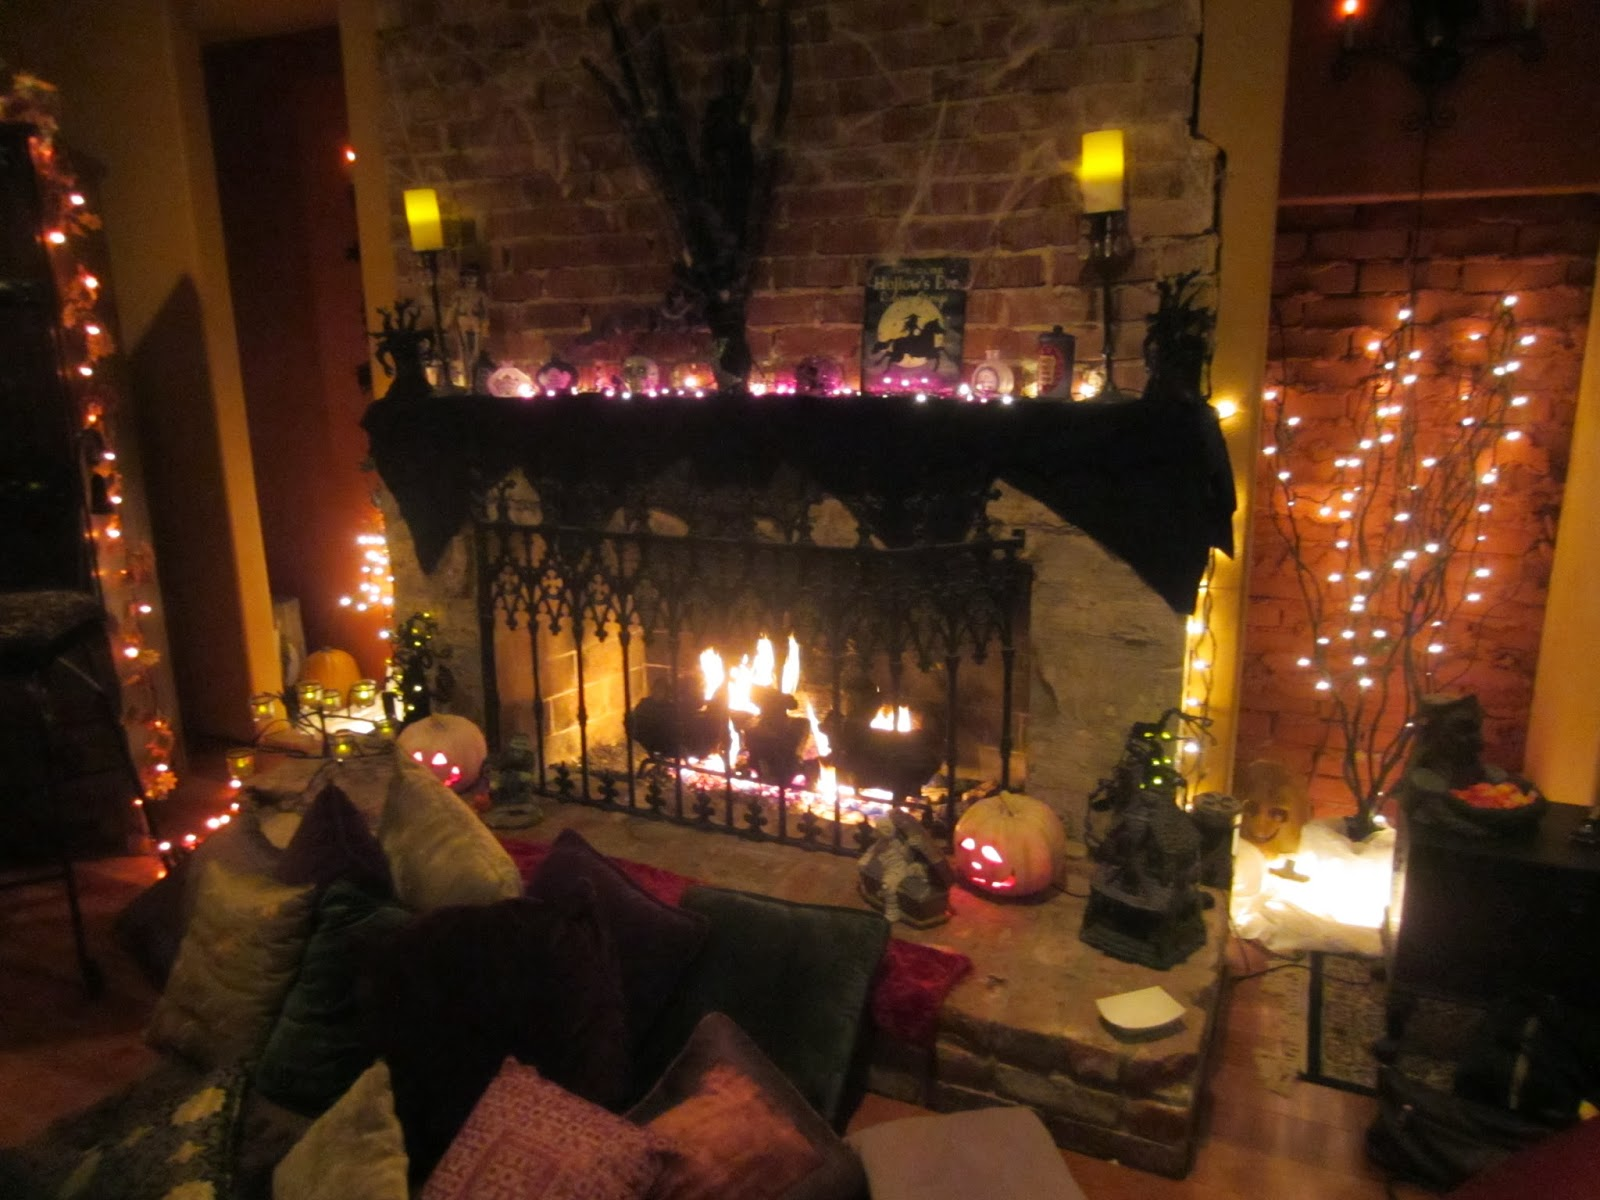 Halloween Home Design Ideas: Hd Wallpapers Blog: Halloween Party Decorating Ideas